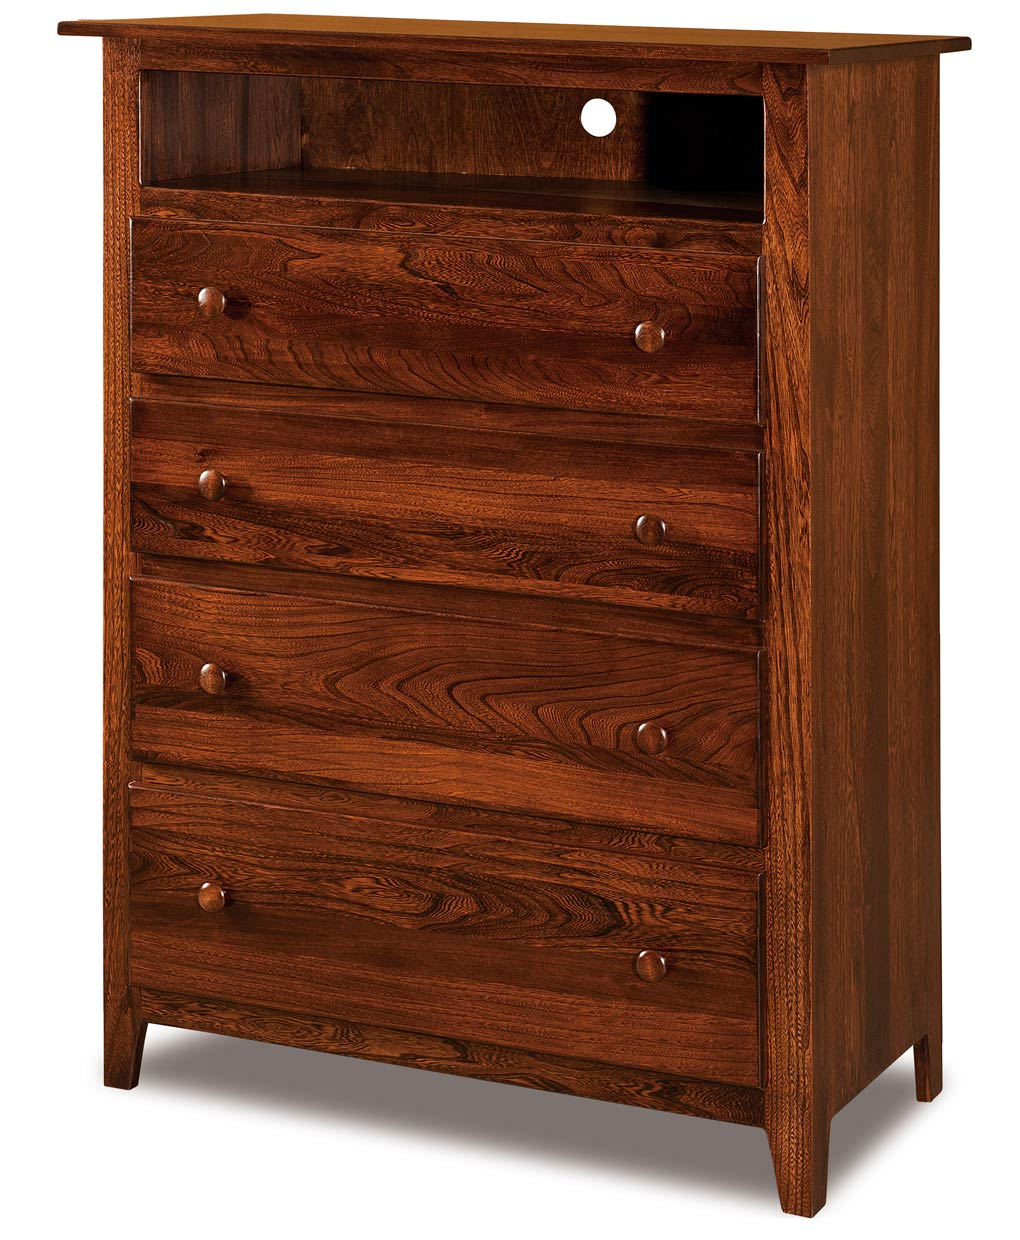 media chest of drawers furniture black chest of drawers media chest bedroom dressers wayfair. Black Bedroom Furniture Sets. Home Design Ideas